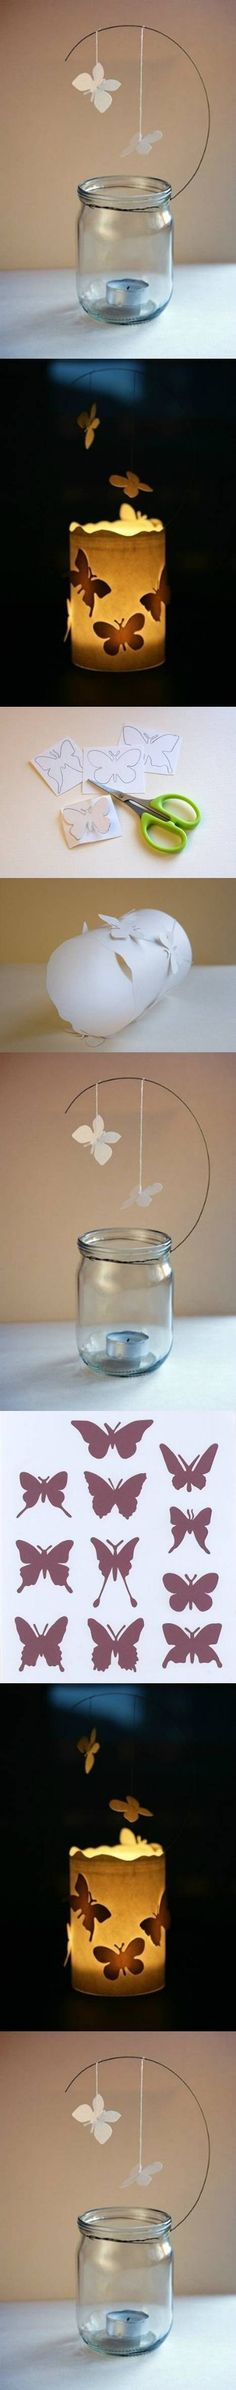 DIY Butterfly Candle Decor Ideas. Nx